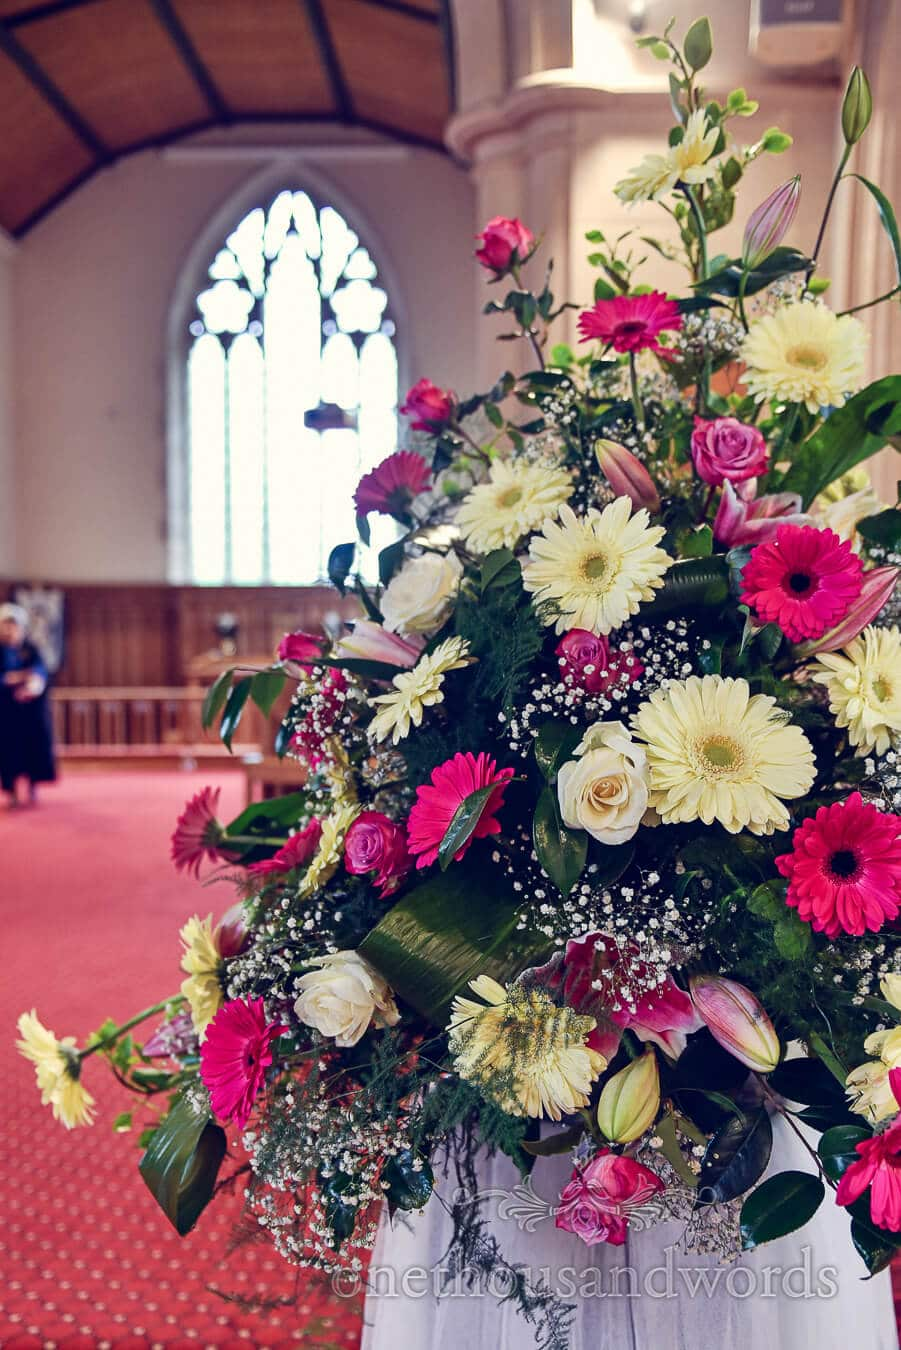 Church flowers from Haven hotel wedding